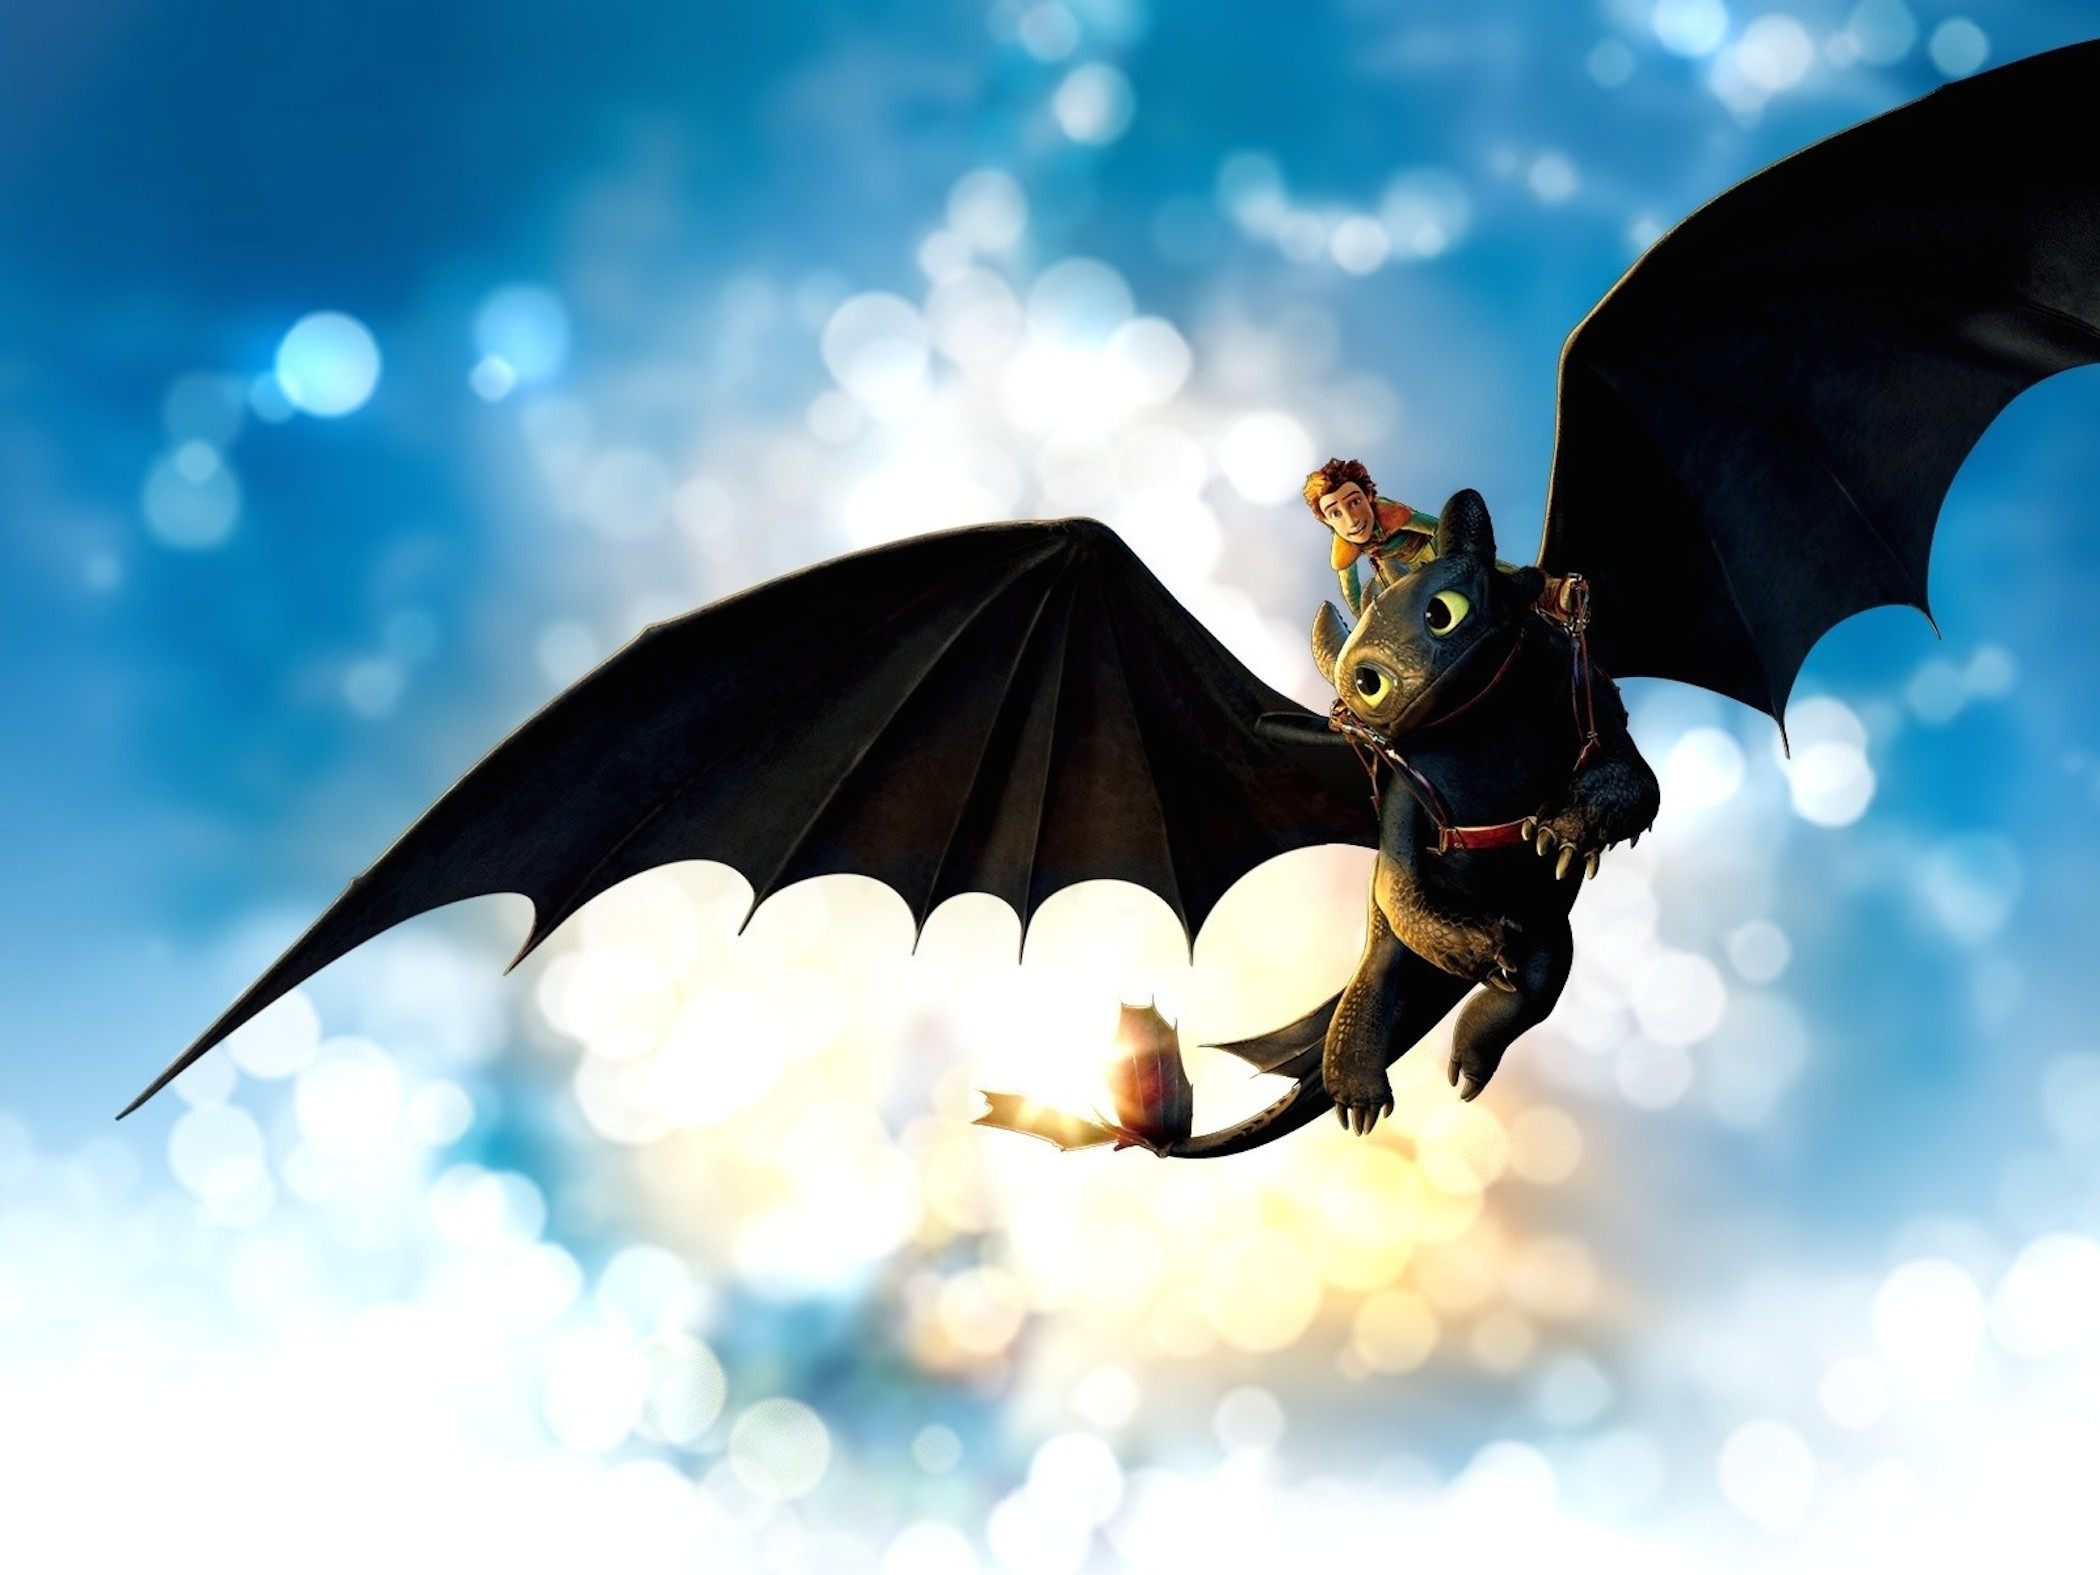 Hiccup Riding Toothless Wallpaper Free Hd Downloads